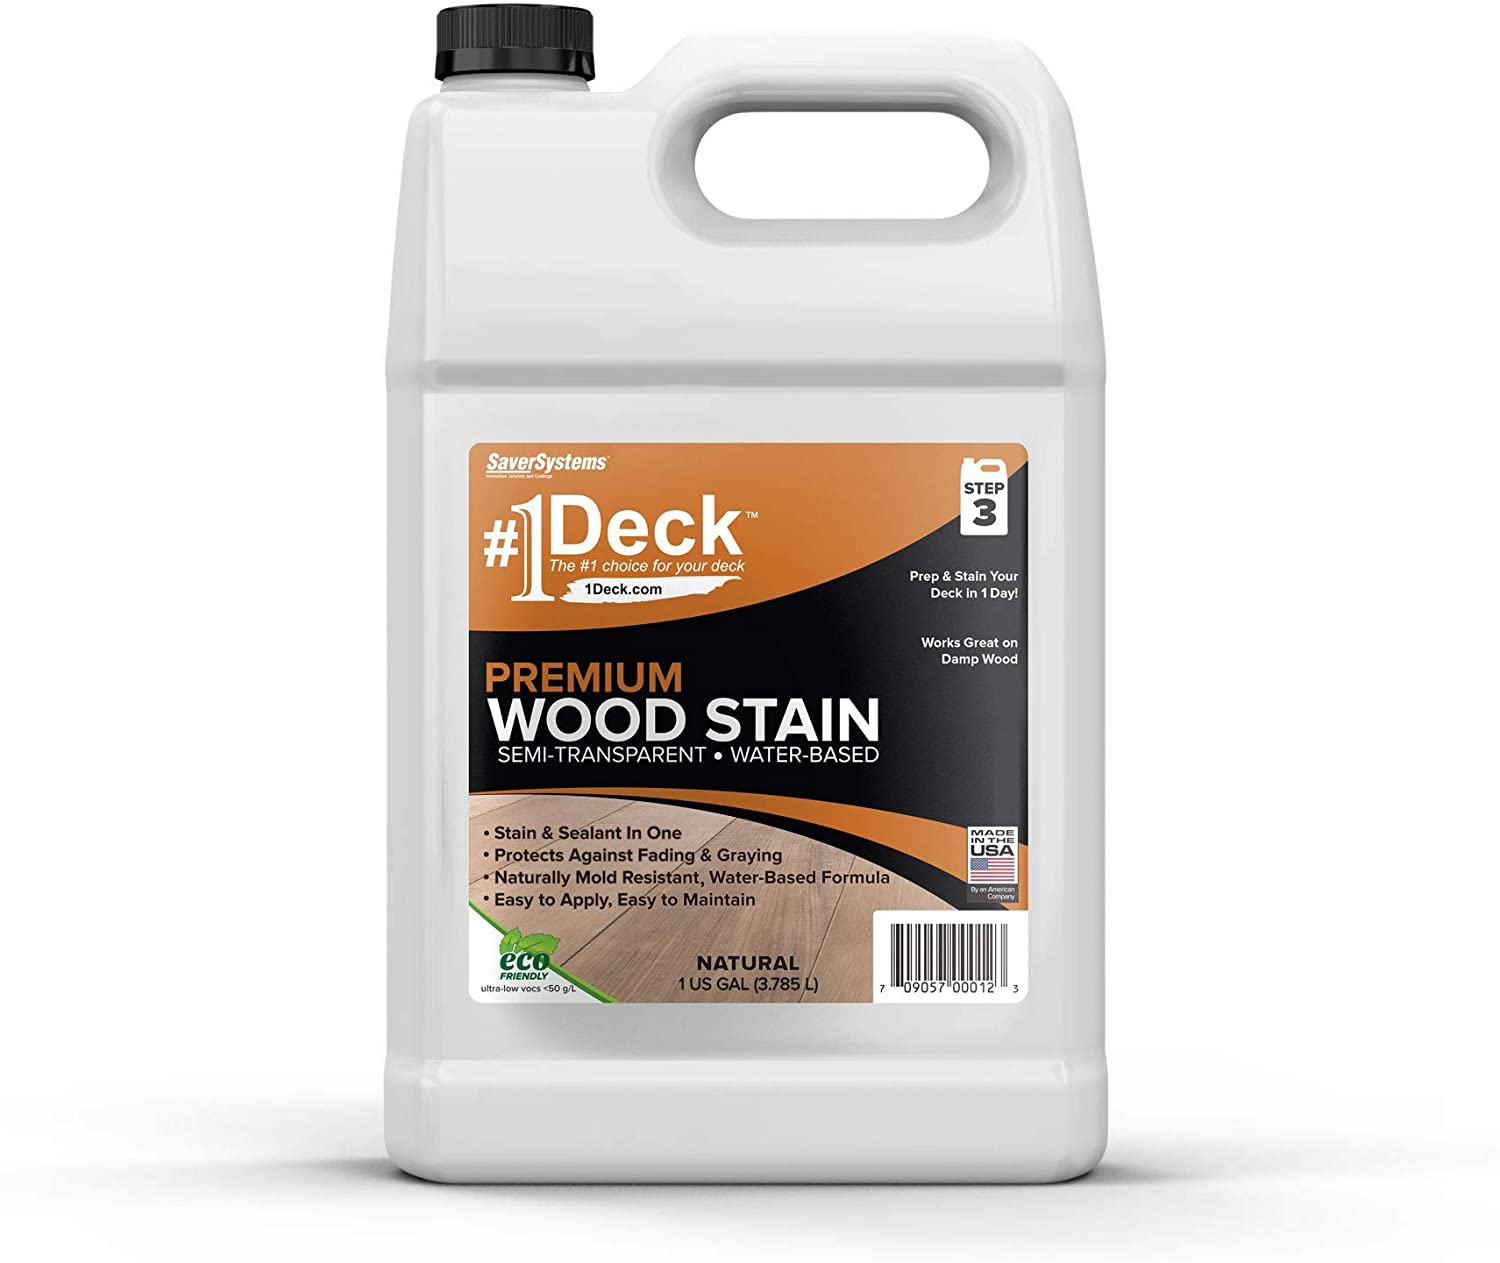 #1 Deck Premium Semi-Transparent Wood Stain